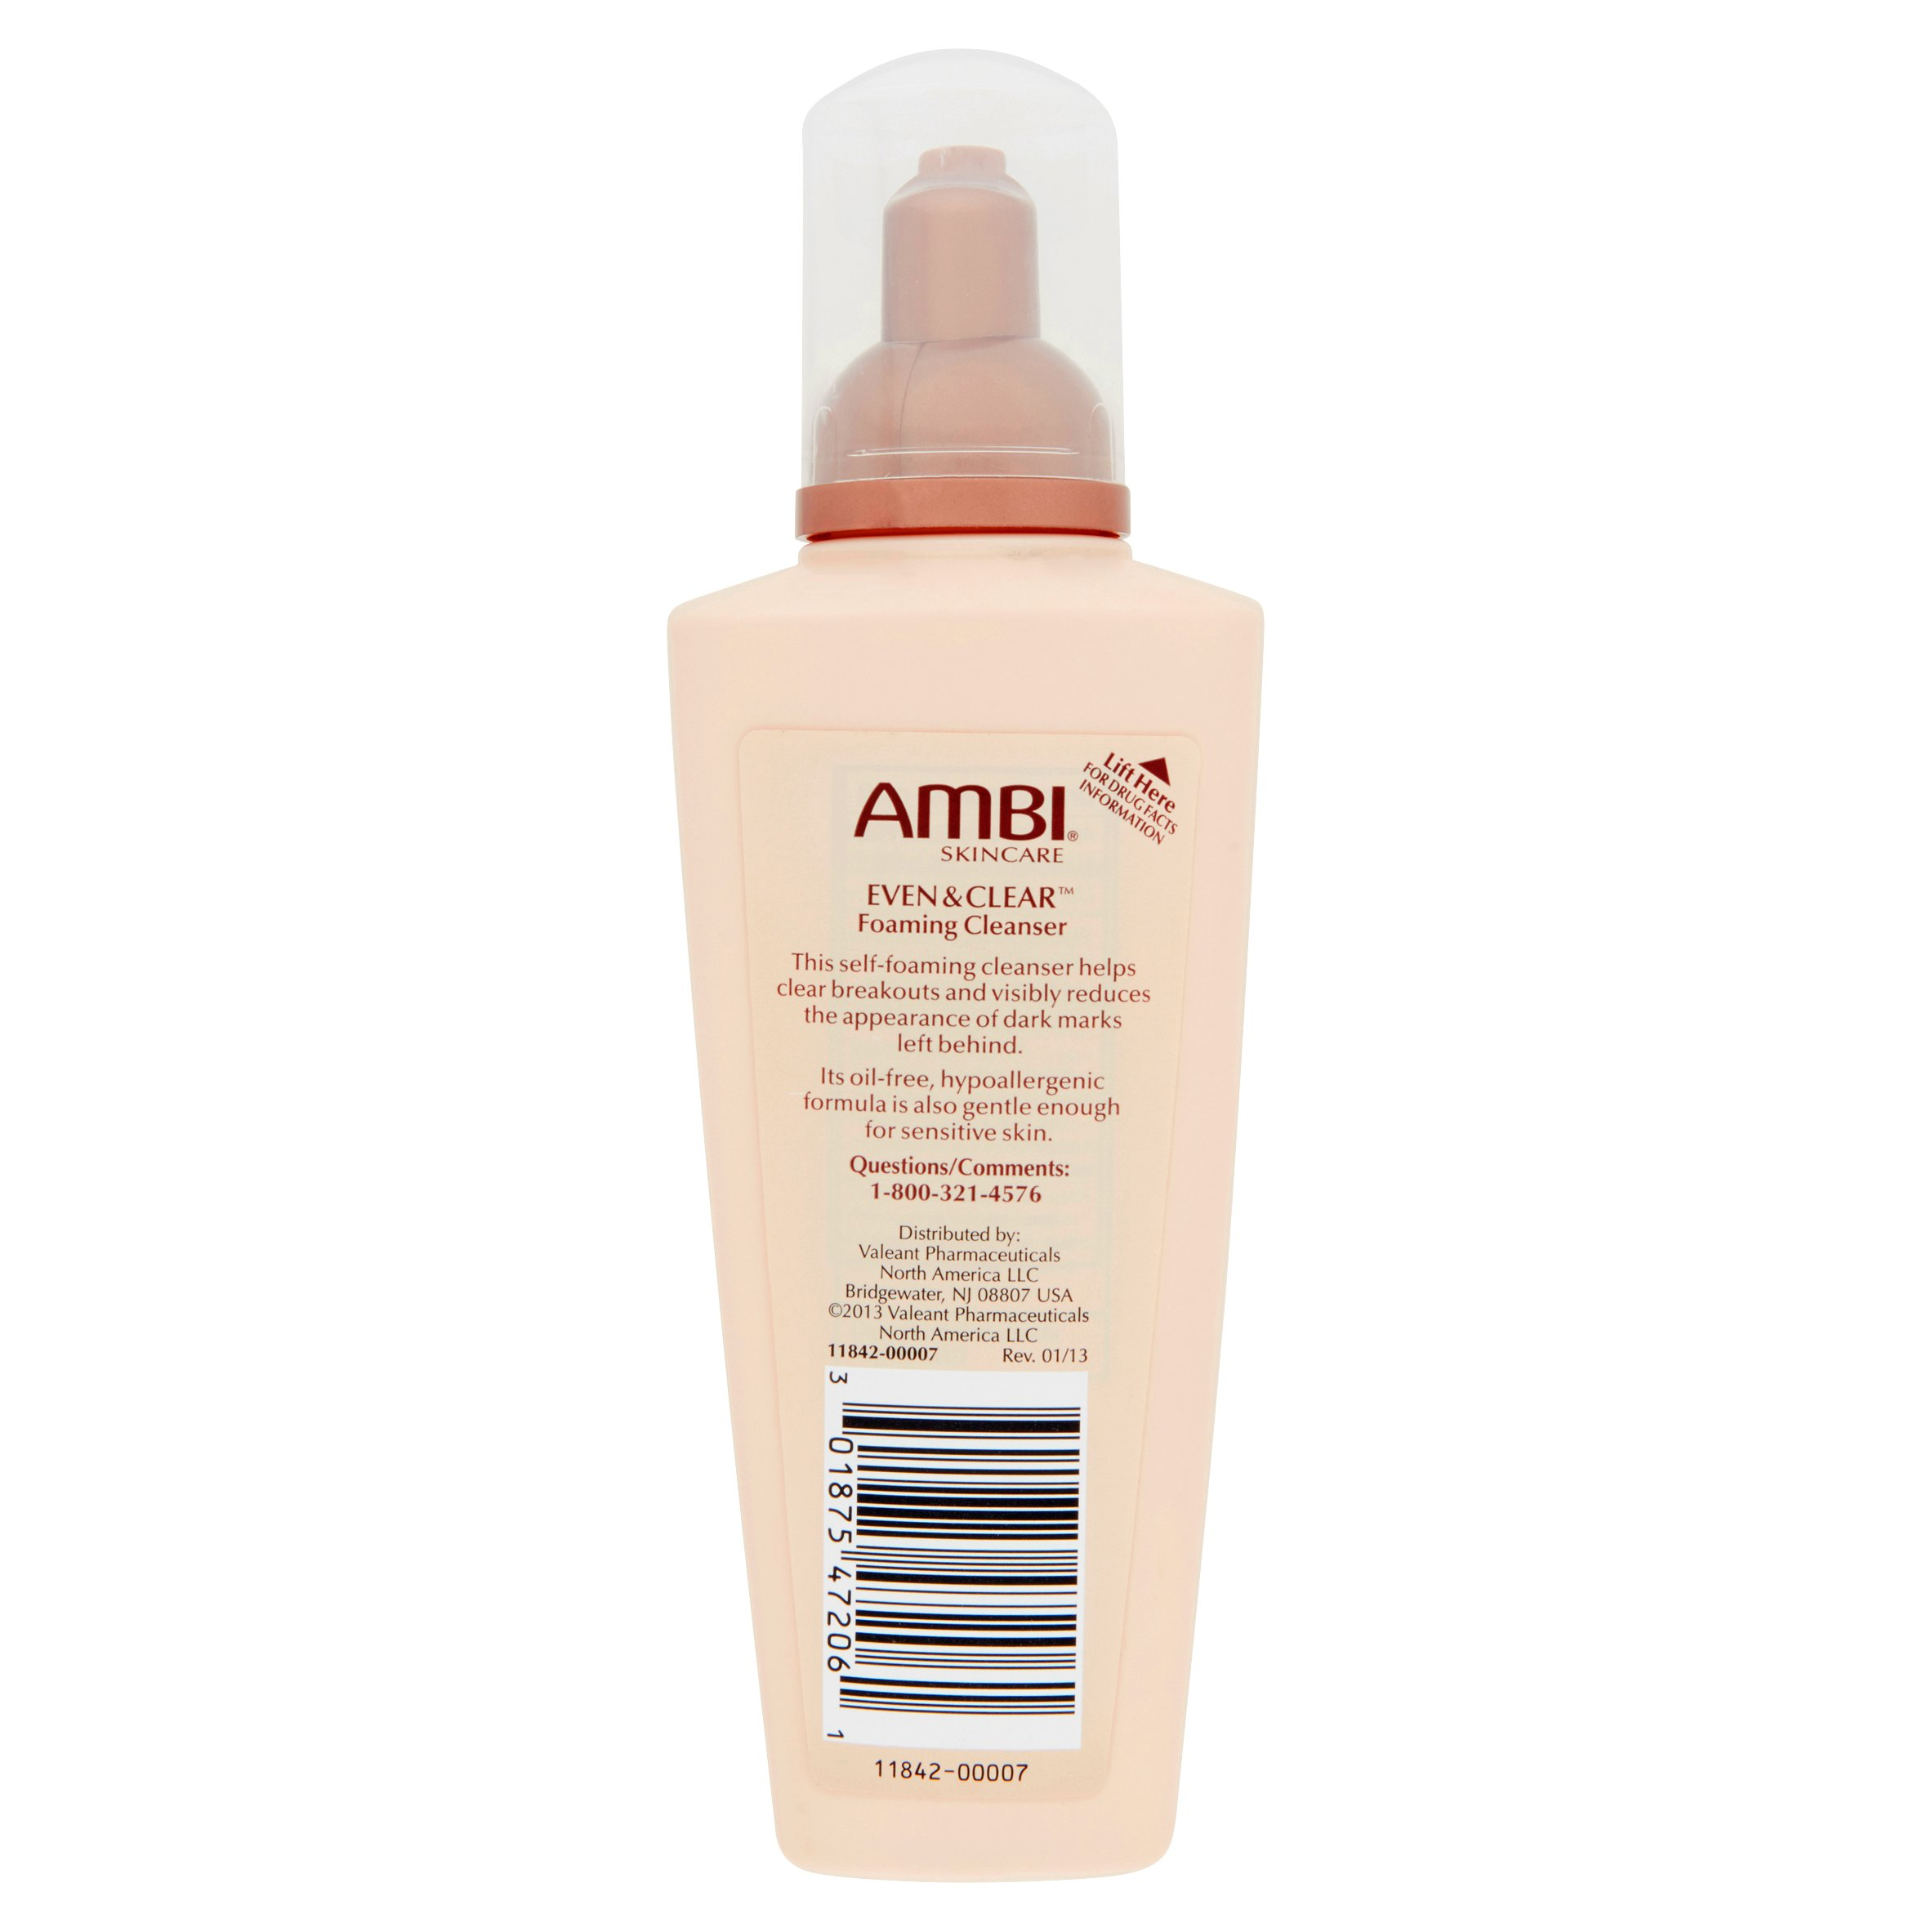 Ambi Even and Clear Foaming Cleanser, 6 Oz - Walmart.com